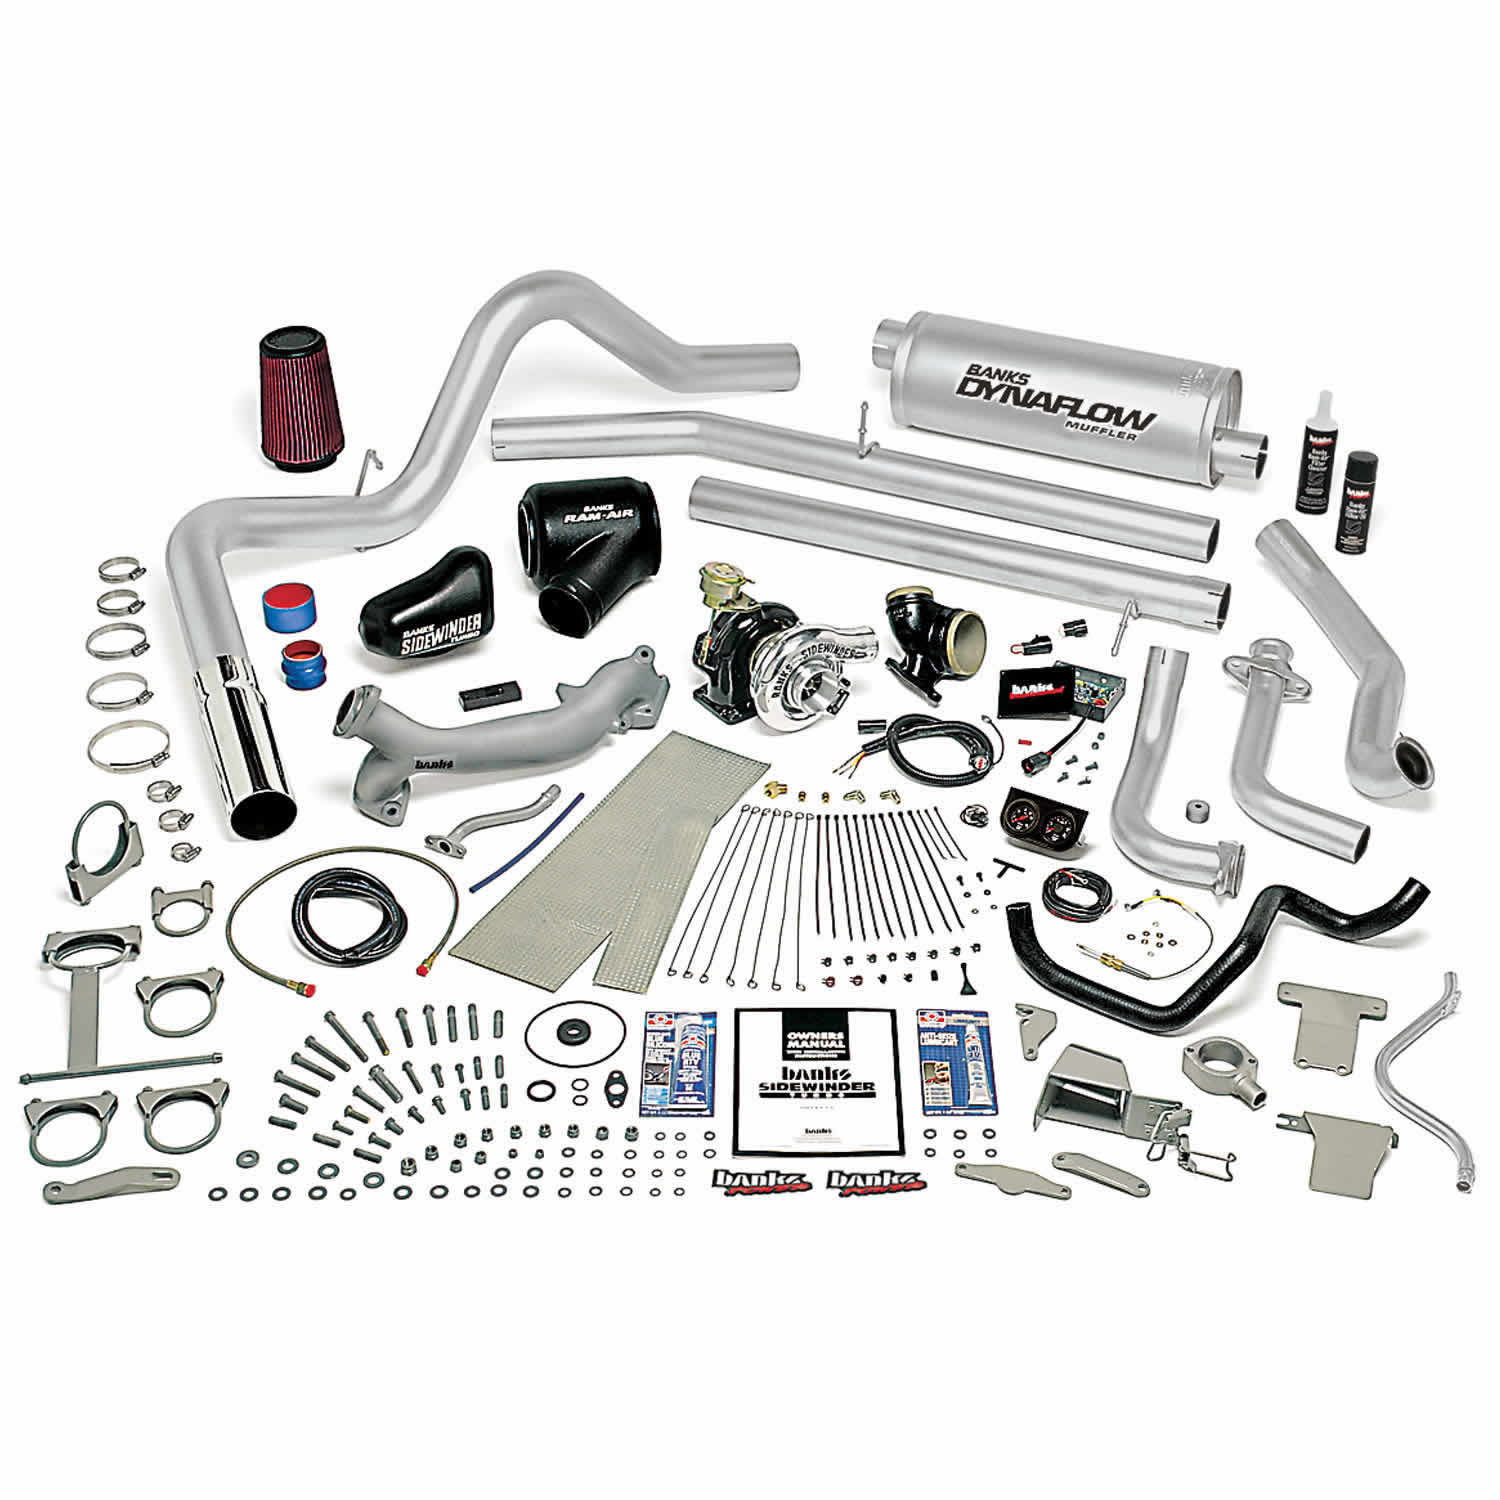 Exhaust System / Air Intake Assembly / Turbocharger Kit